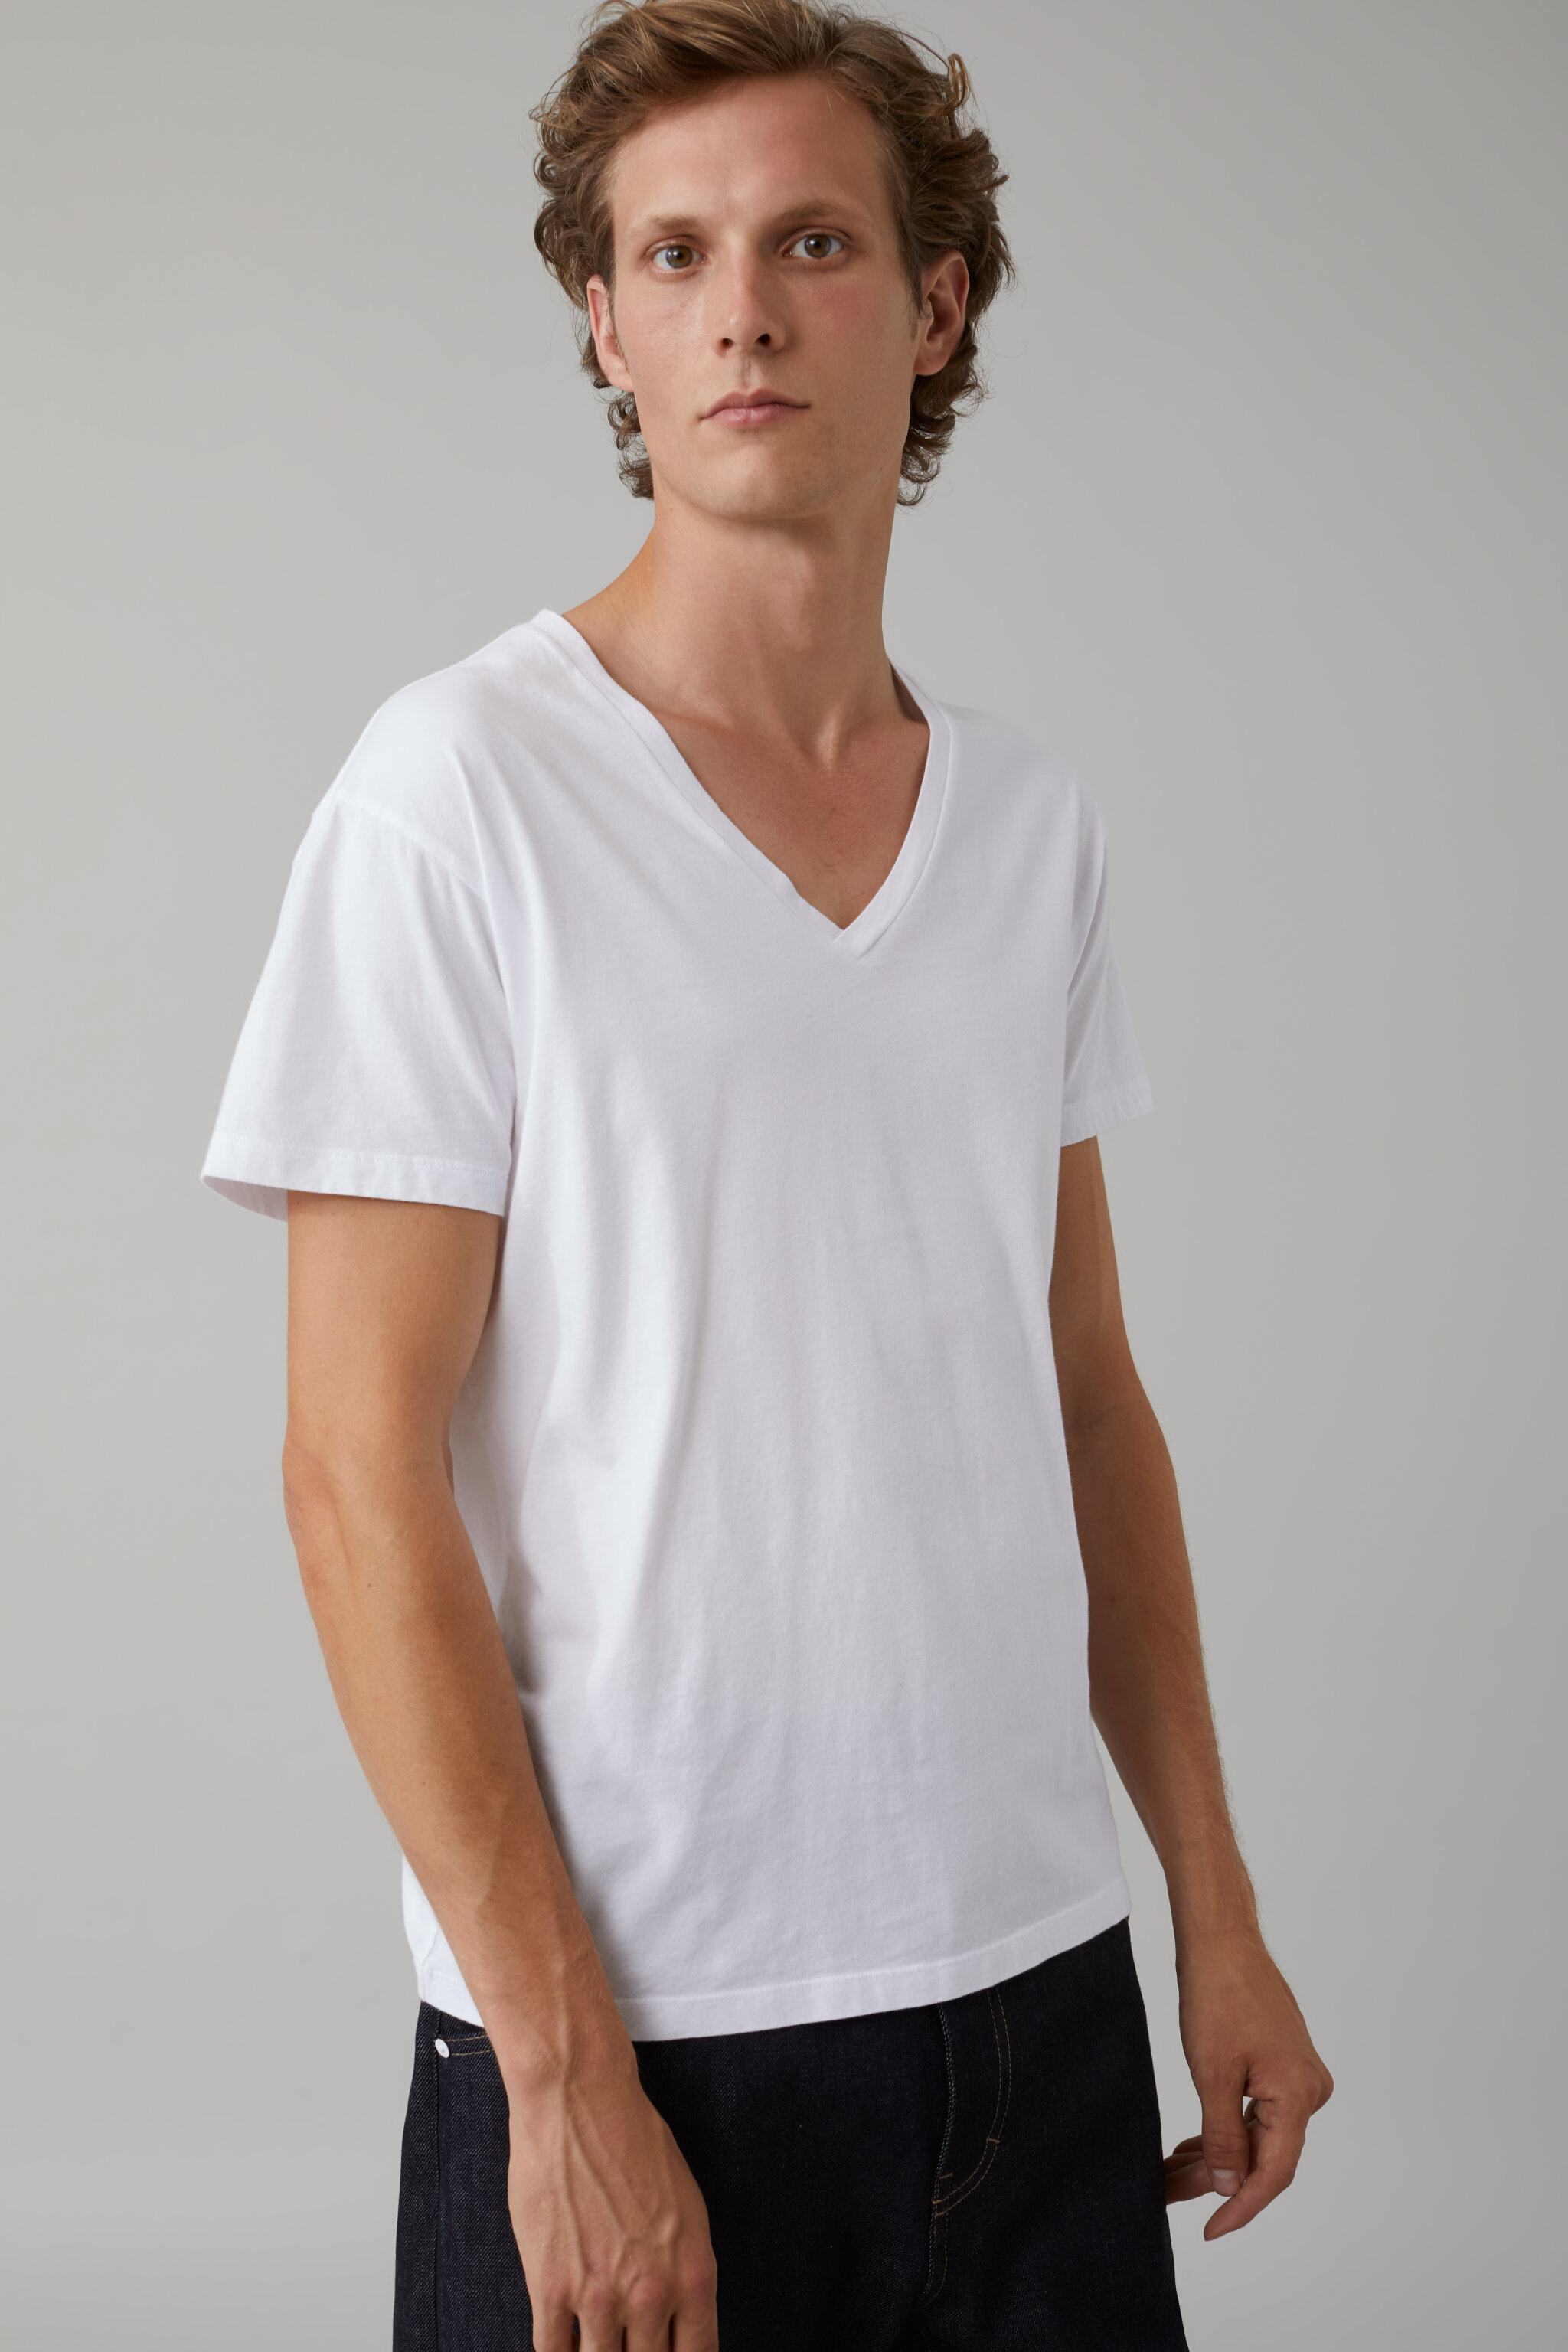 Herren CLOSED Basic V-Neck Shirt white | 4054736219805